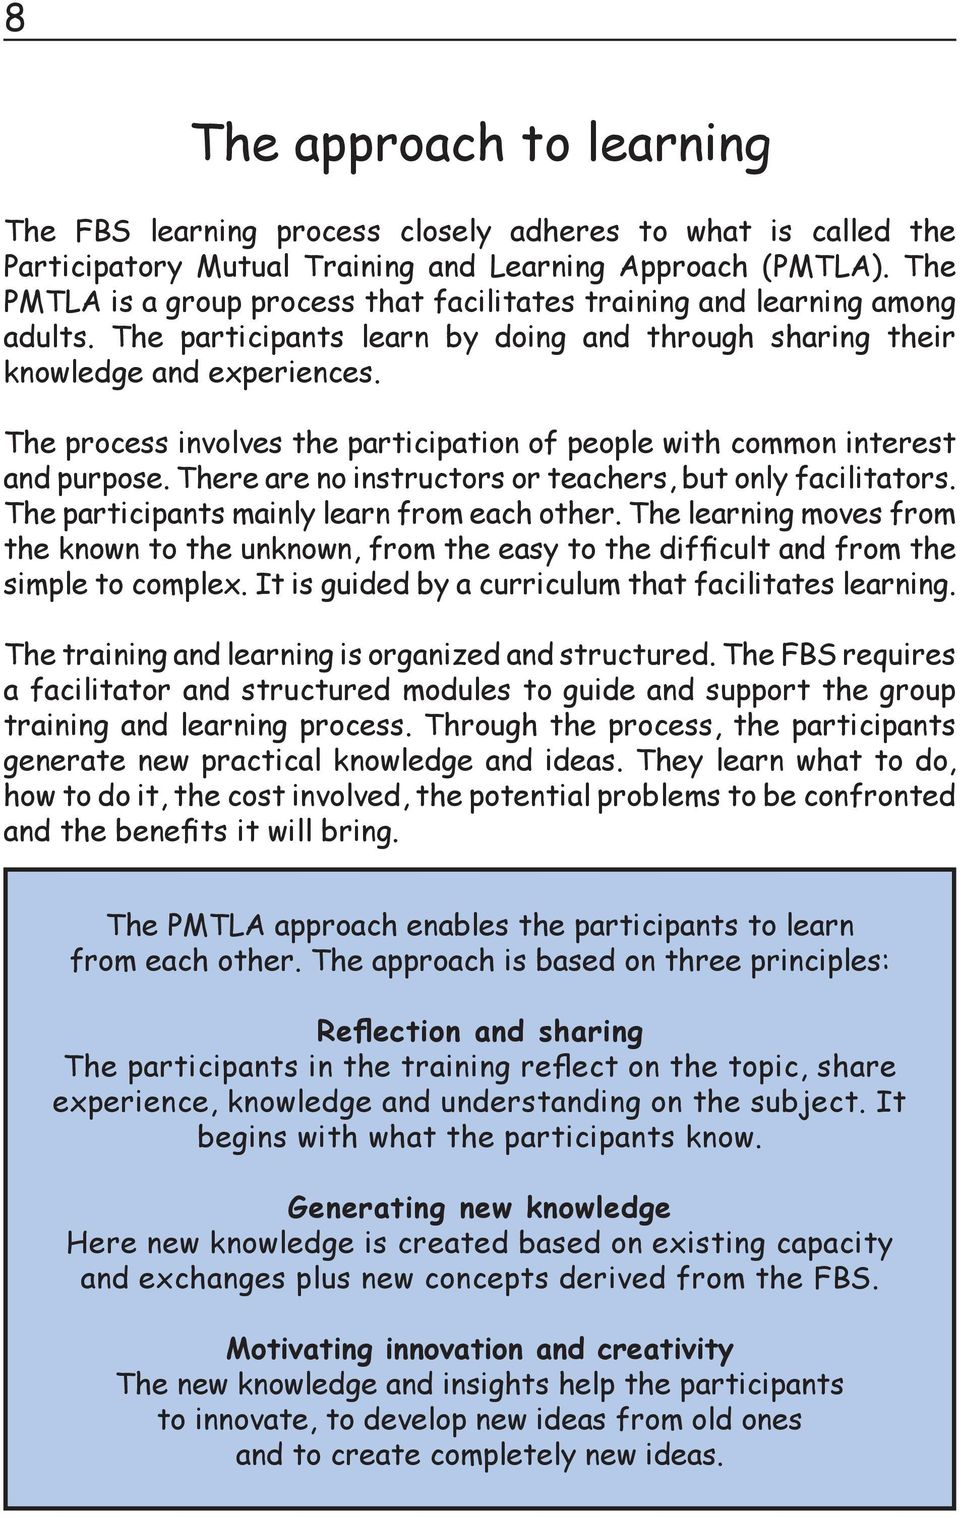 The process involves the participation of people with common interest and purpose. There are no instructors or teachers, but only facilitators. The participants mainly learn from each other.